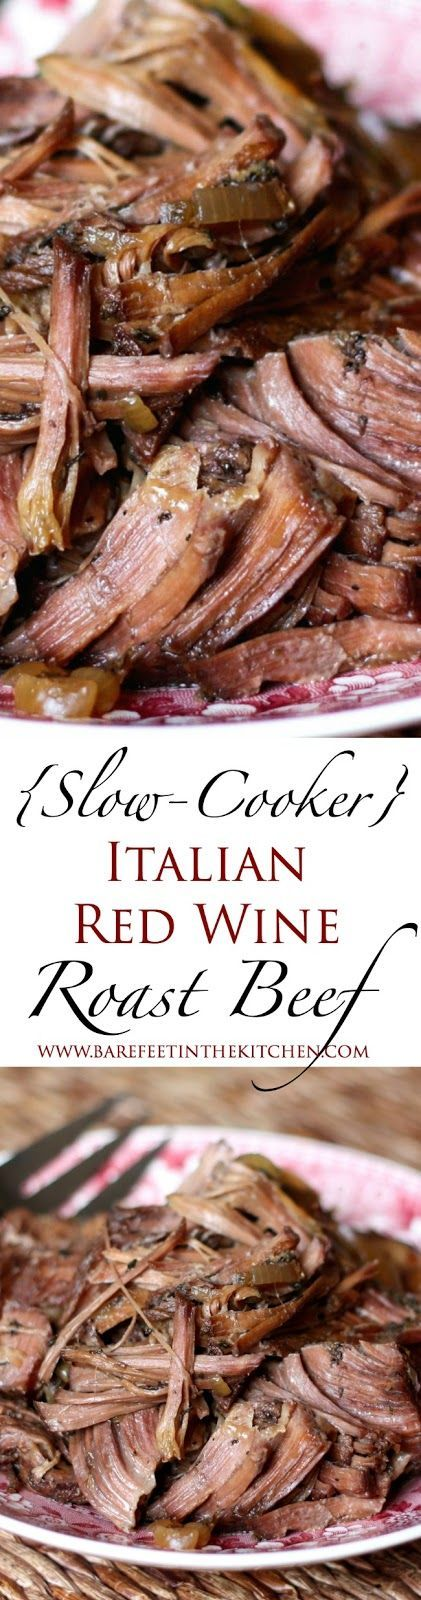 {Slow-Cooker} Italian Red Wine Roast Beef